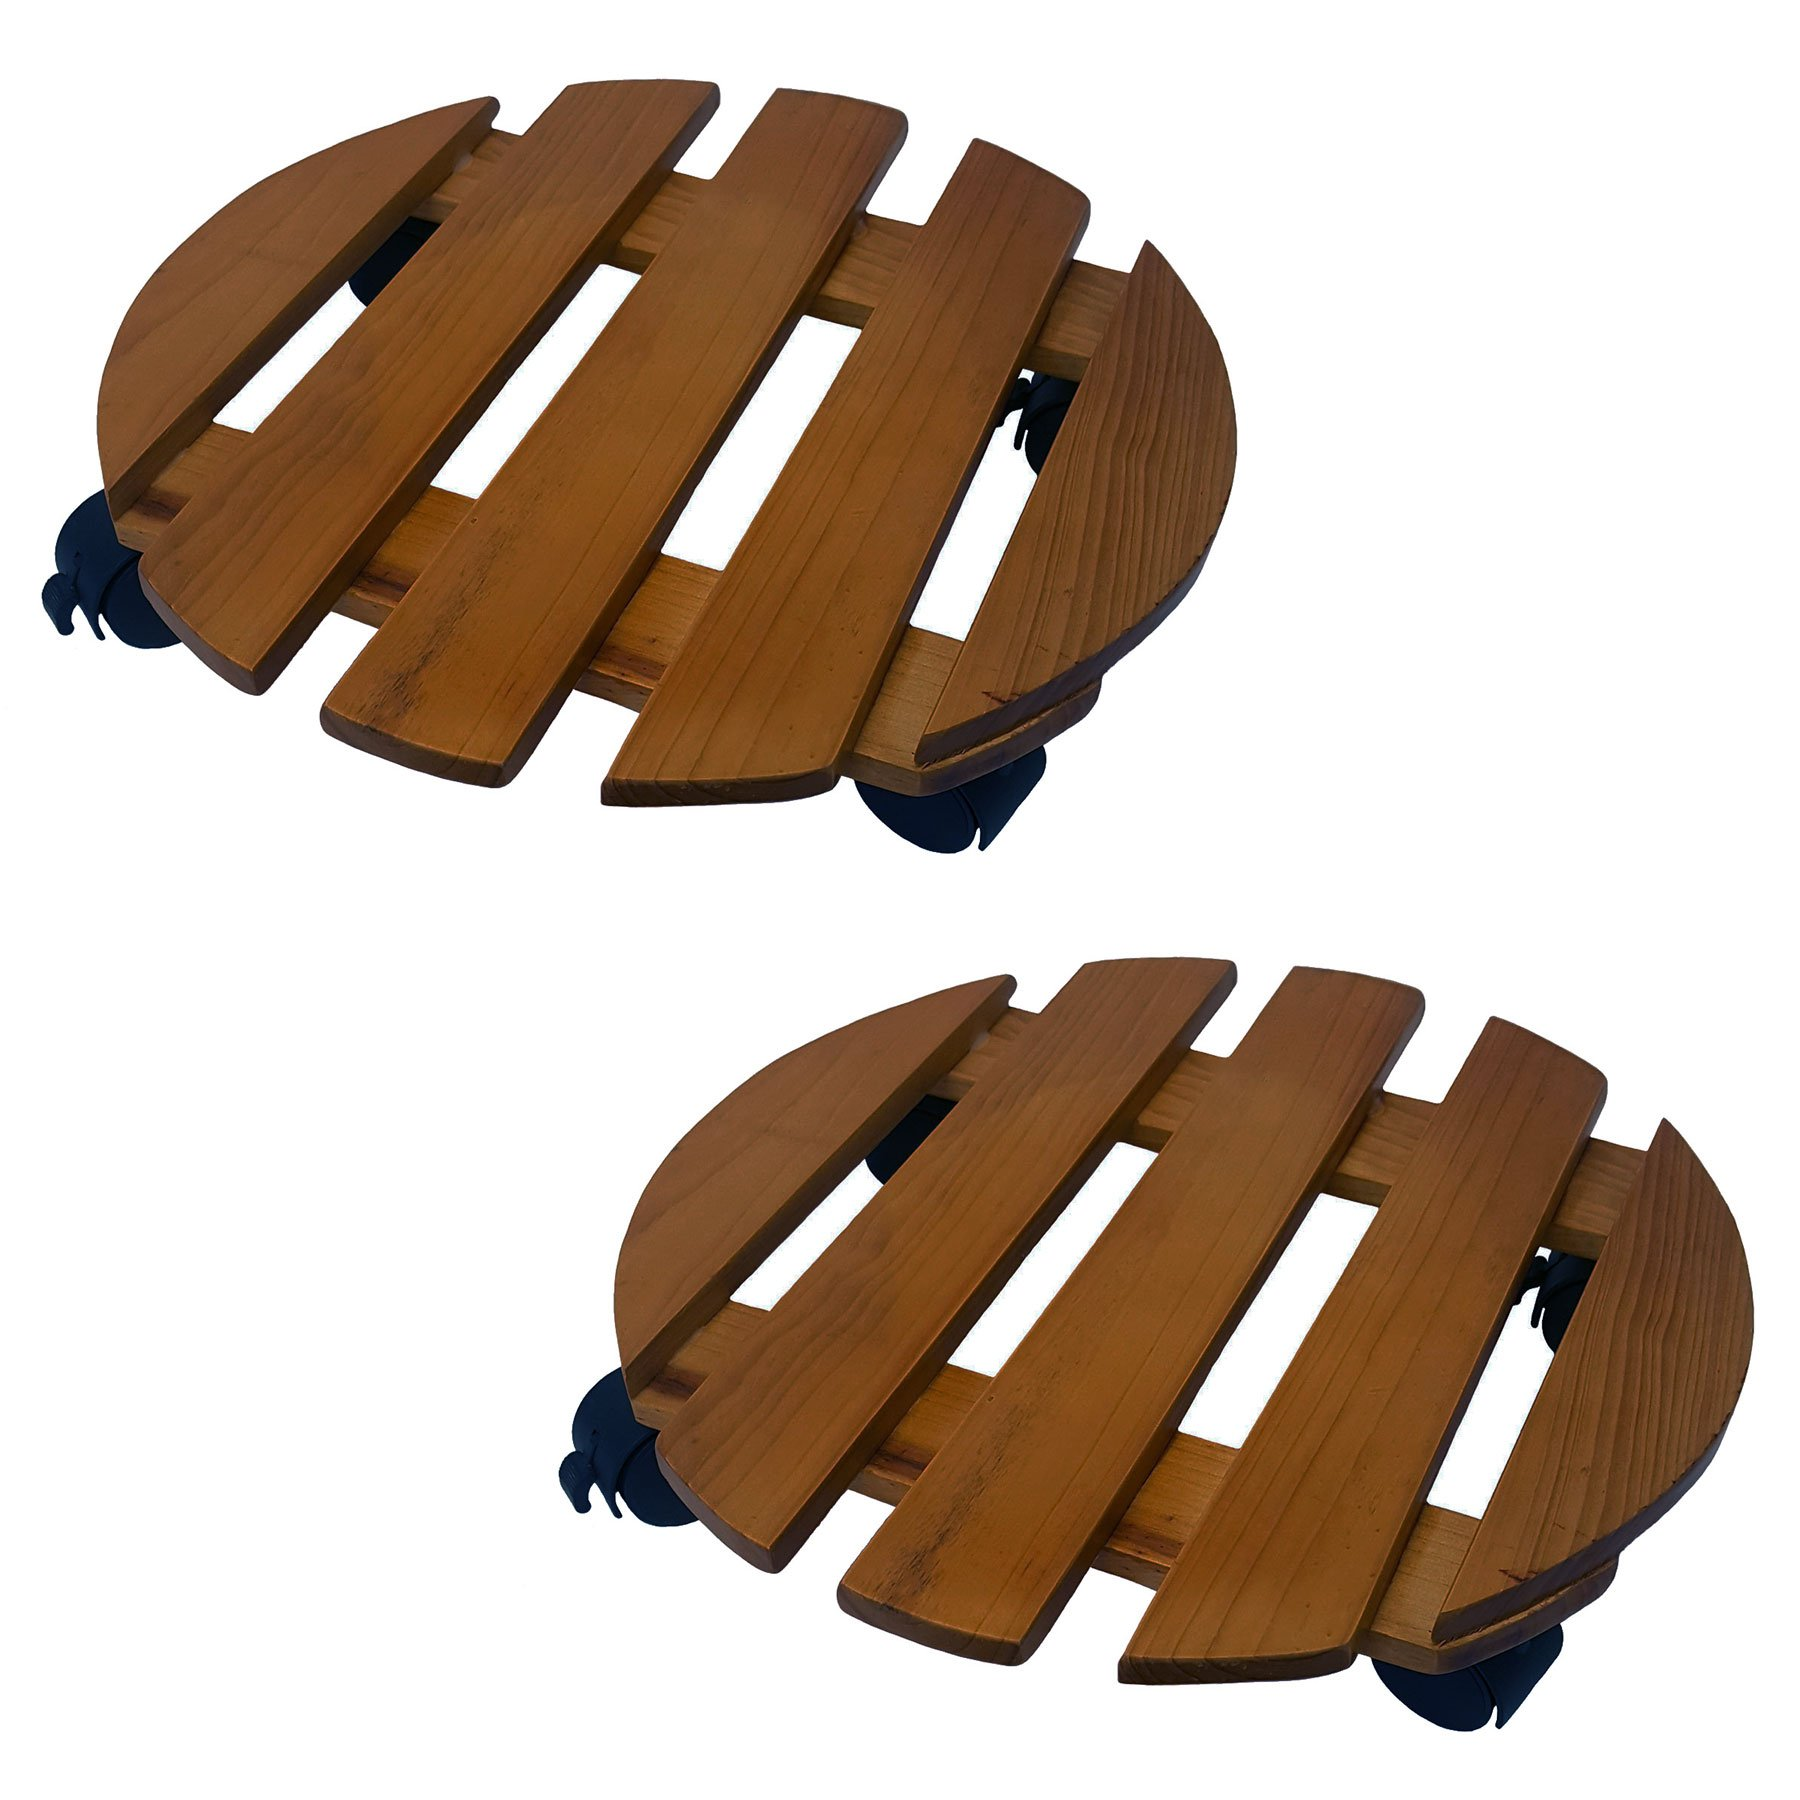 2 Pack of 14 Inch Round Wood Roller Planter Caddy Fruitwood Slatted Wheel Plant by HowPlumb